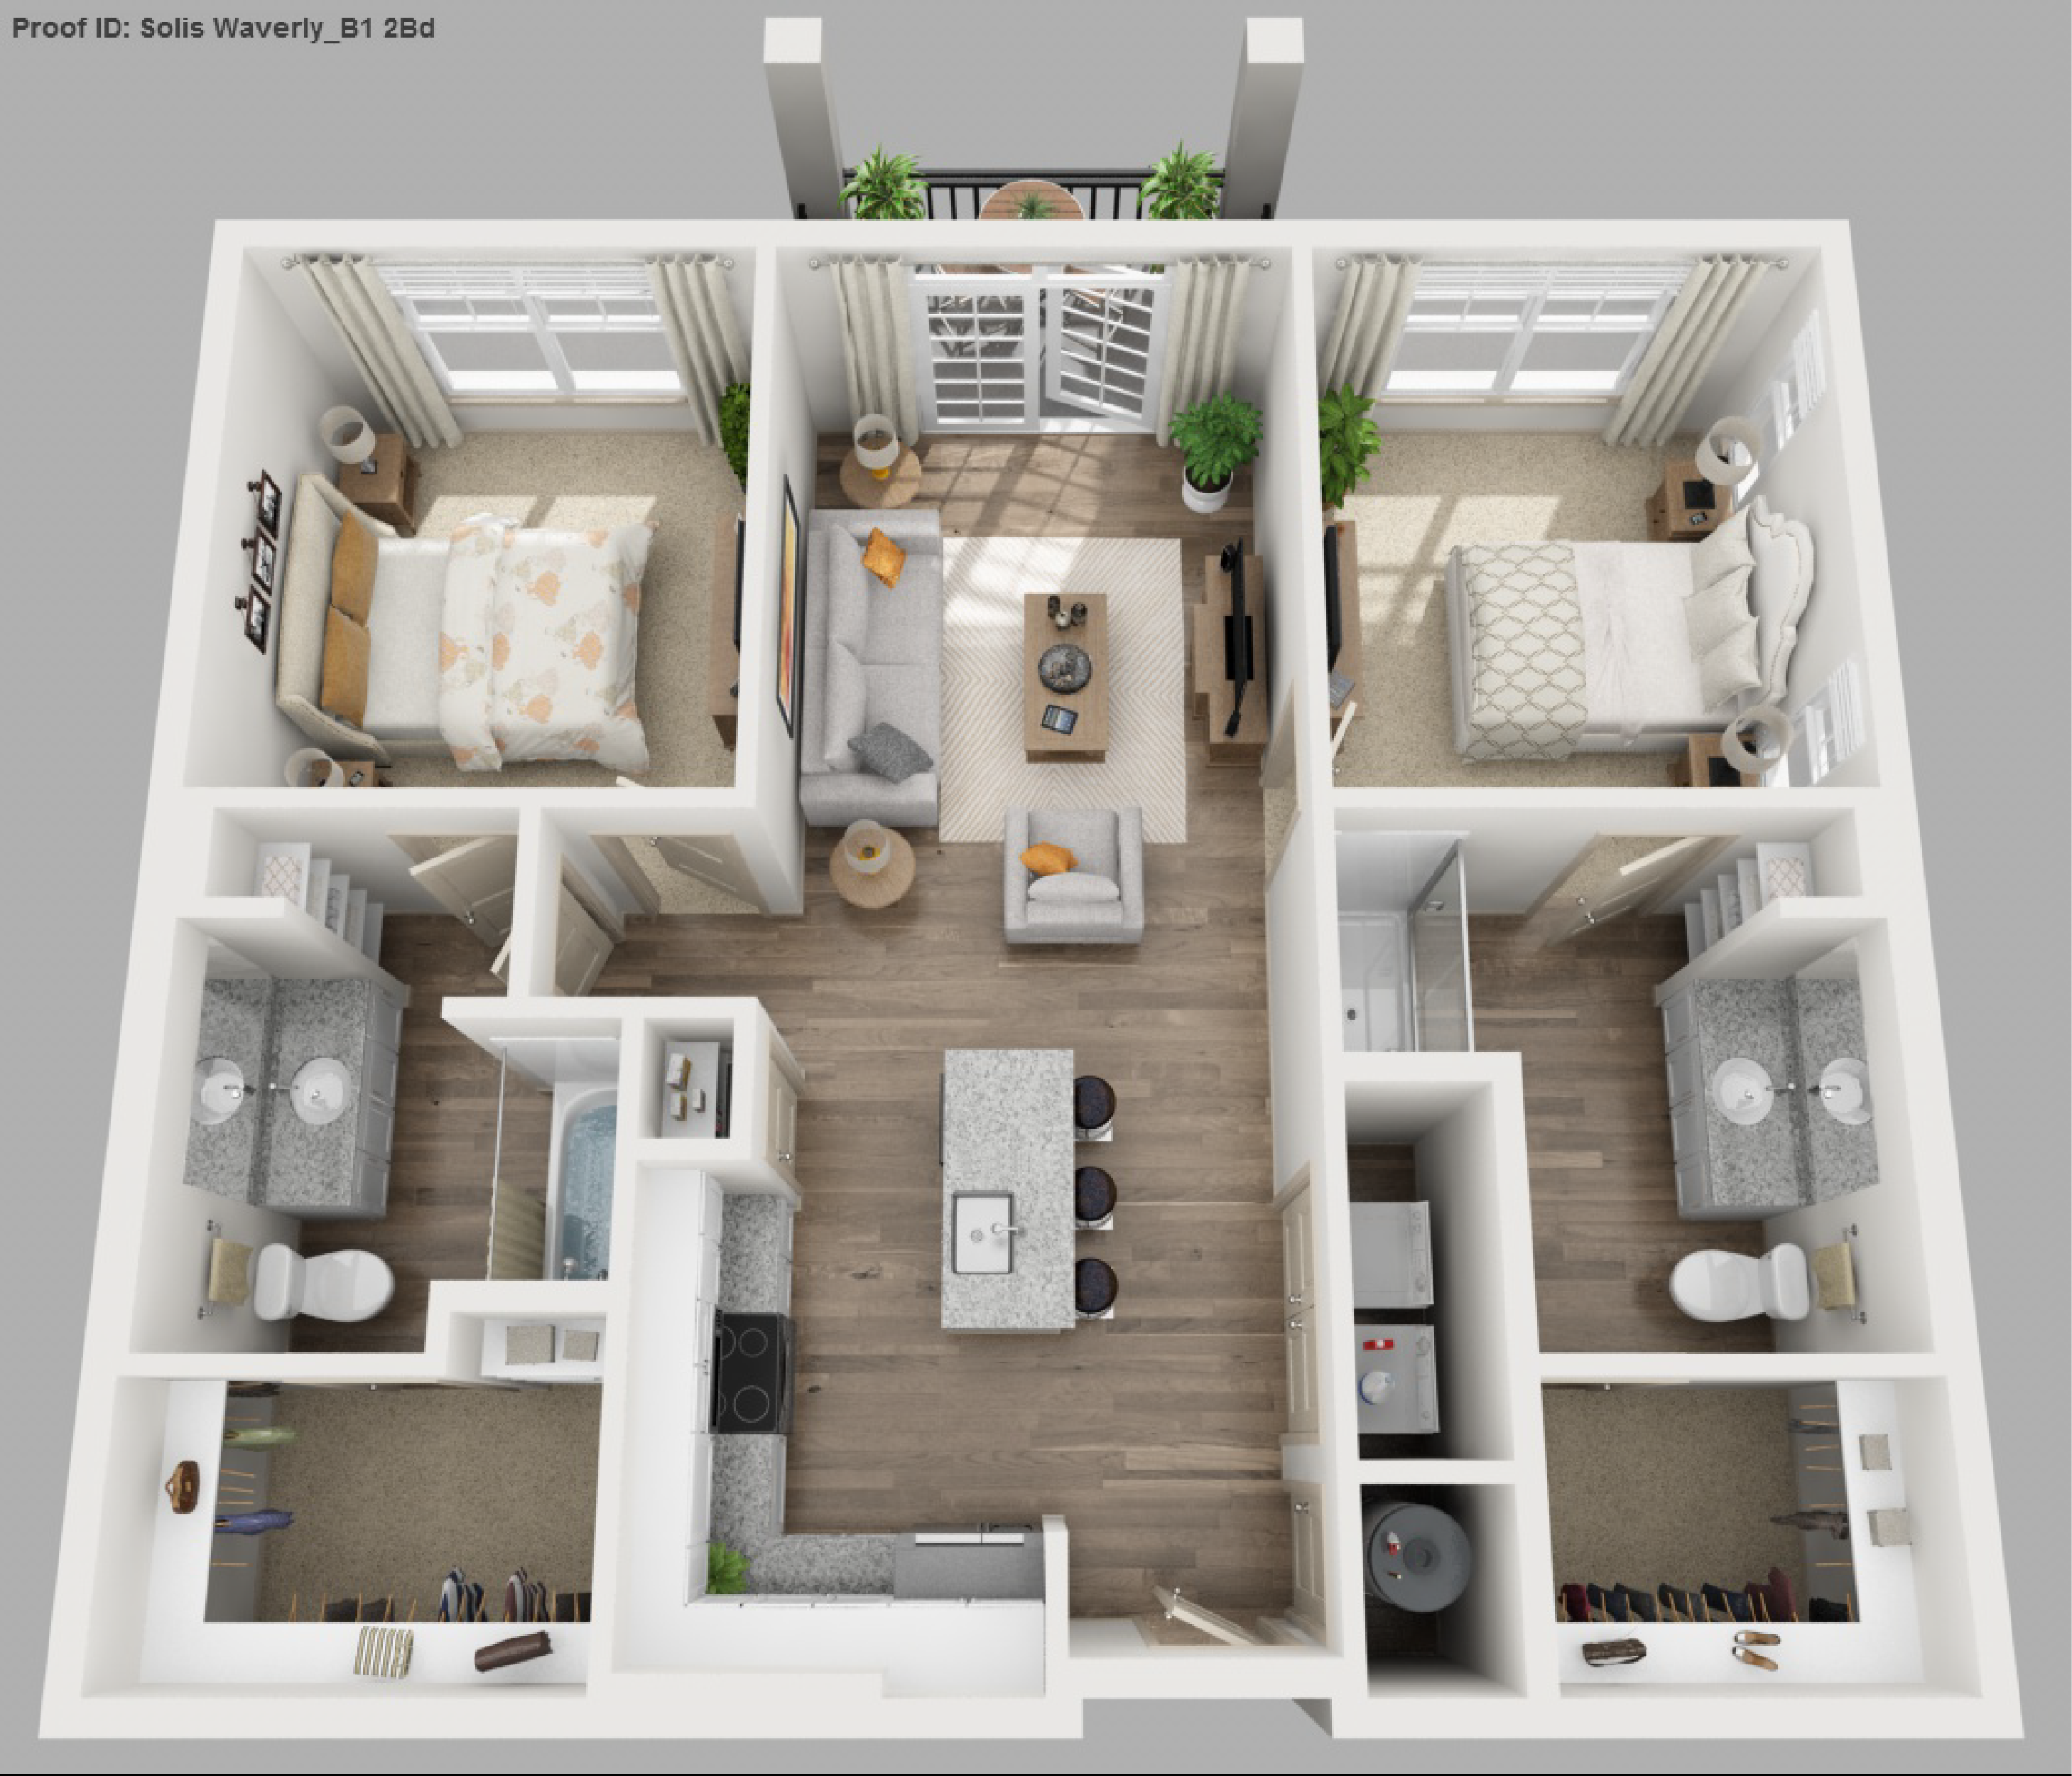 2 Bedroom Apartments Floor Plan solis apartments floorplans - waverly